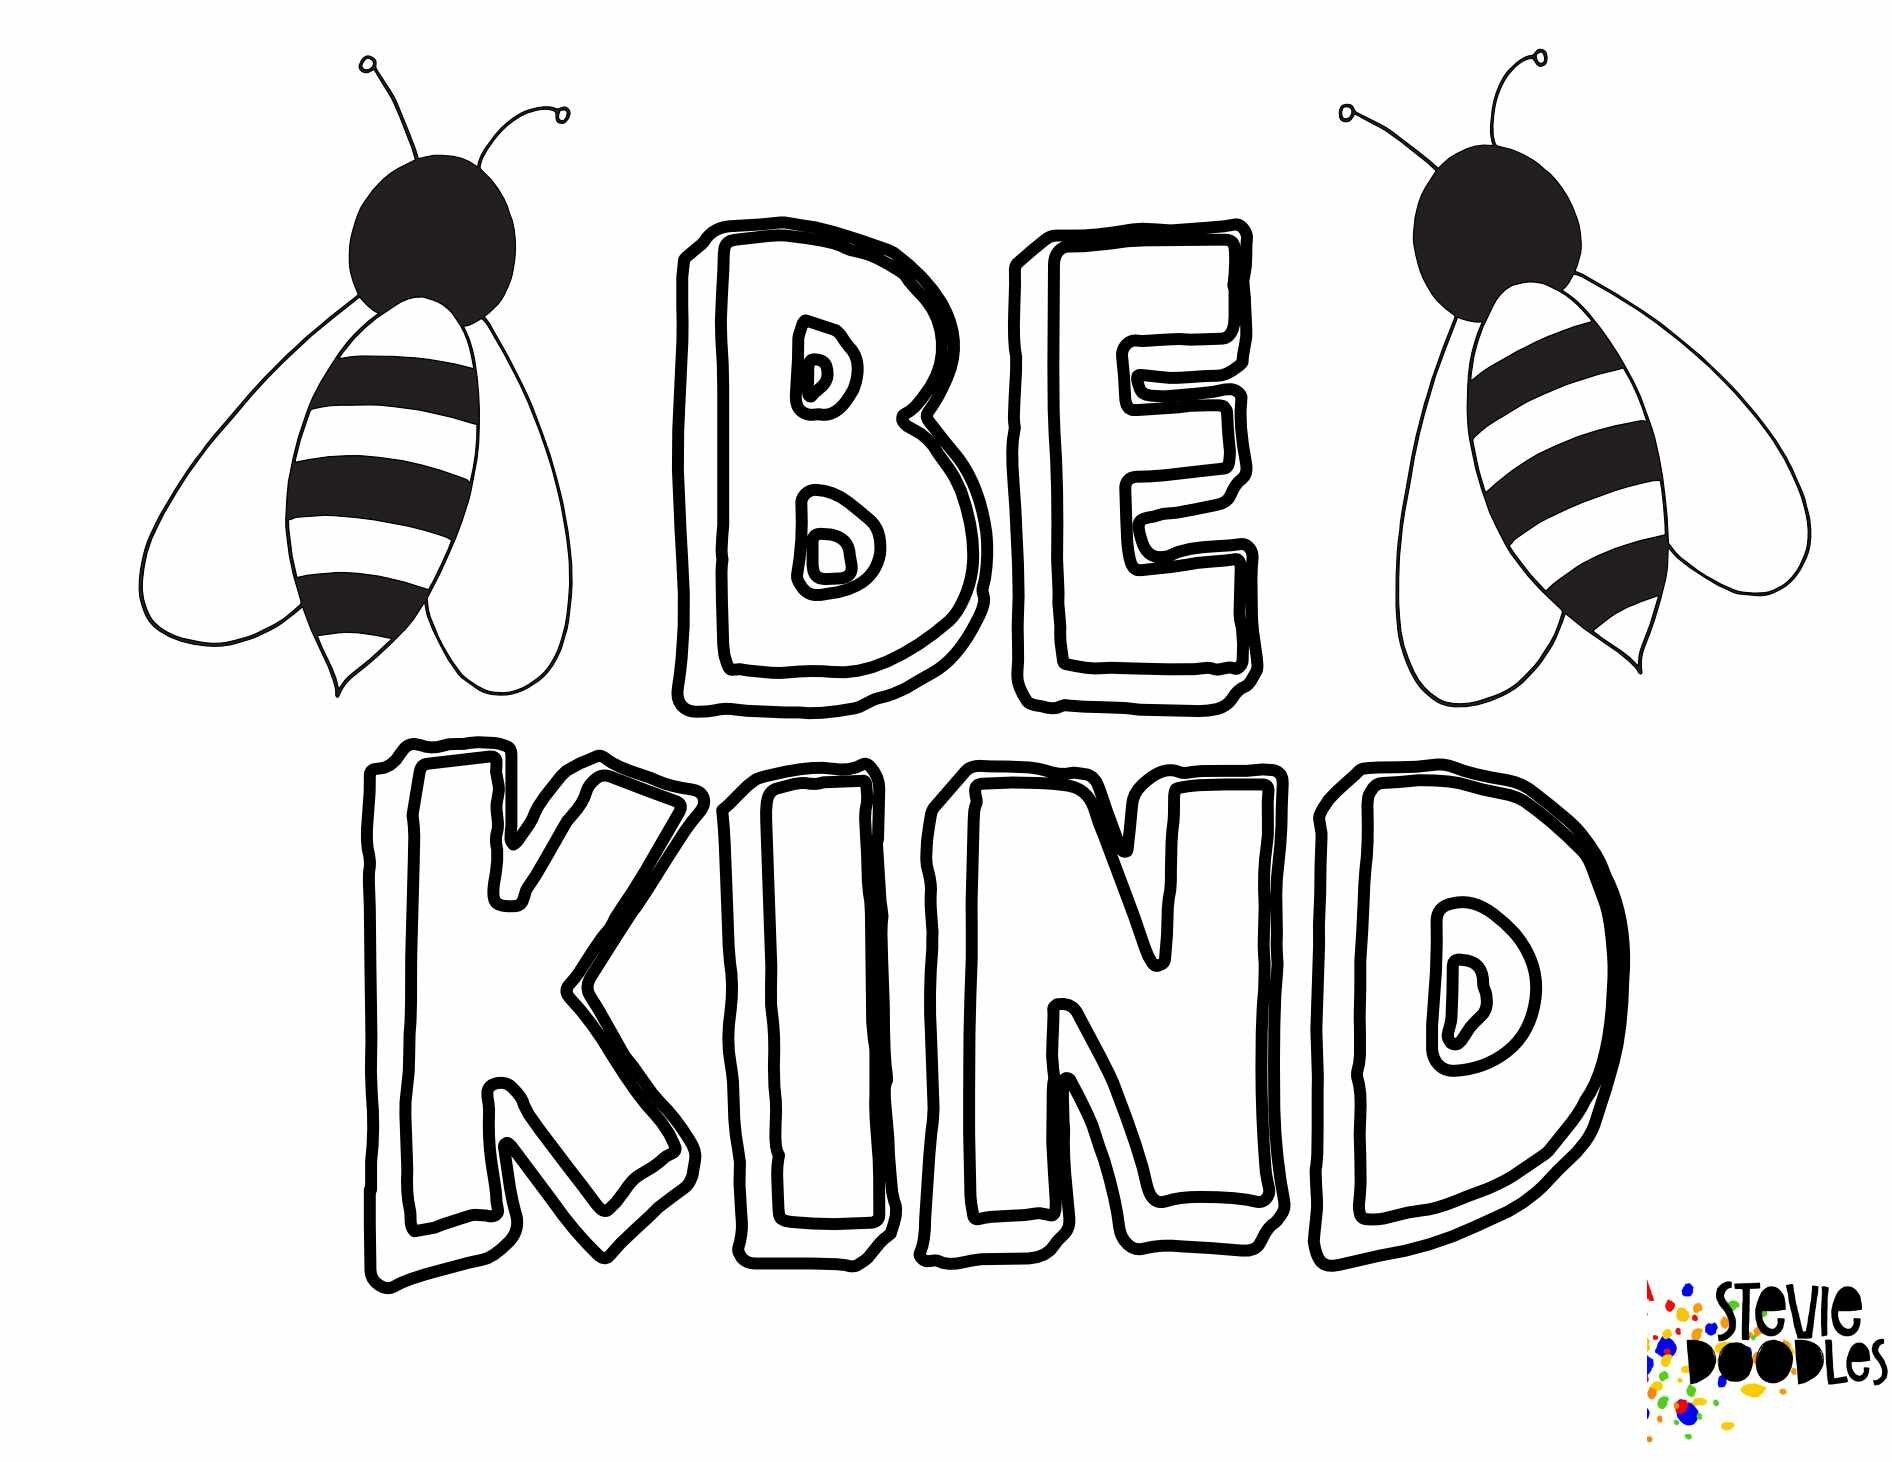 6 Free Be Kind Printable Coloring Pages Stevie Doodles Bee Coloring Pages Coloring Pages Kindergarten Coloring Pages